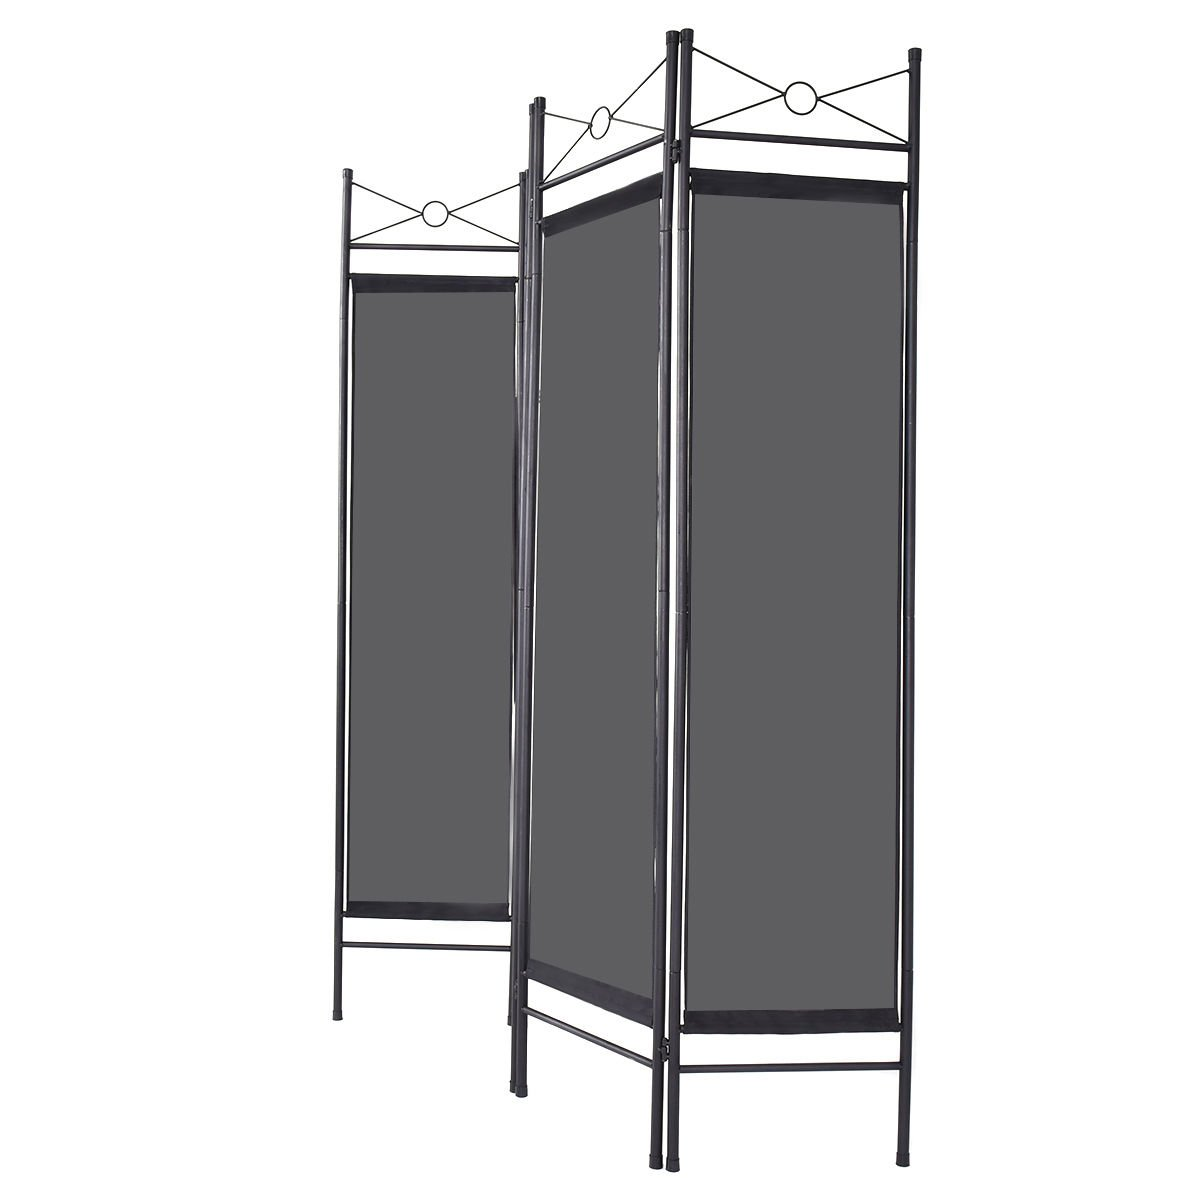 Caraya Room Divider Privacy Screen Home Office Fabric Metal Frame Black 4 Panel by Caraya (Image #3)